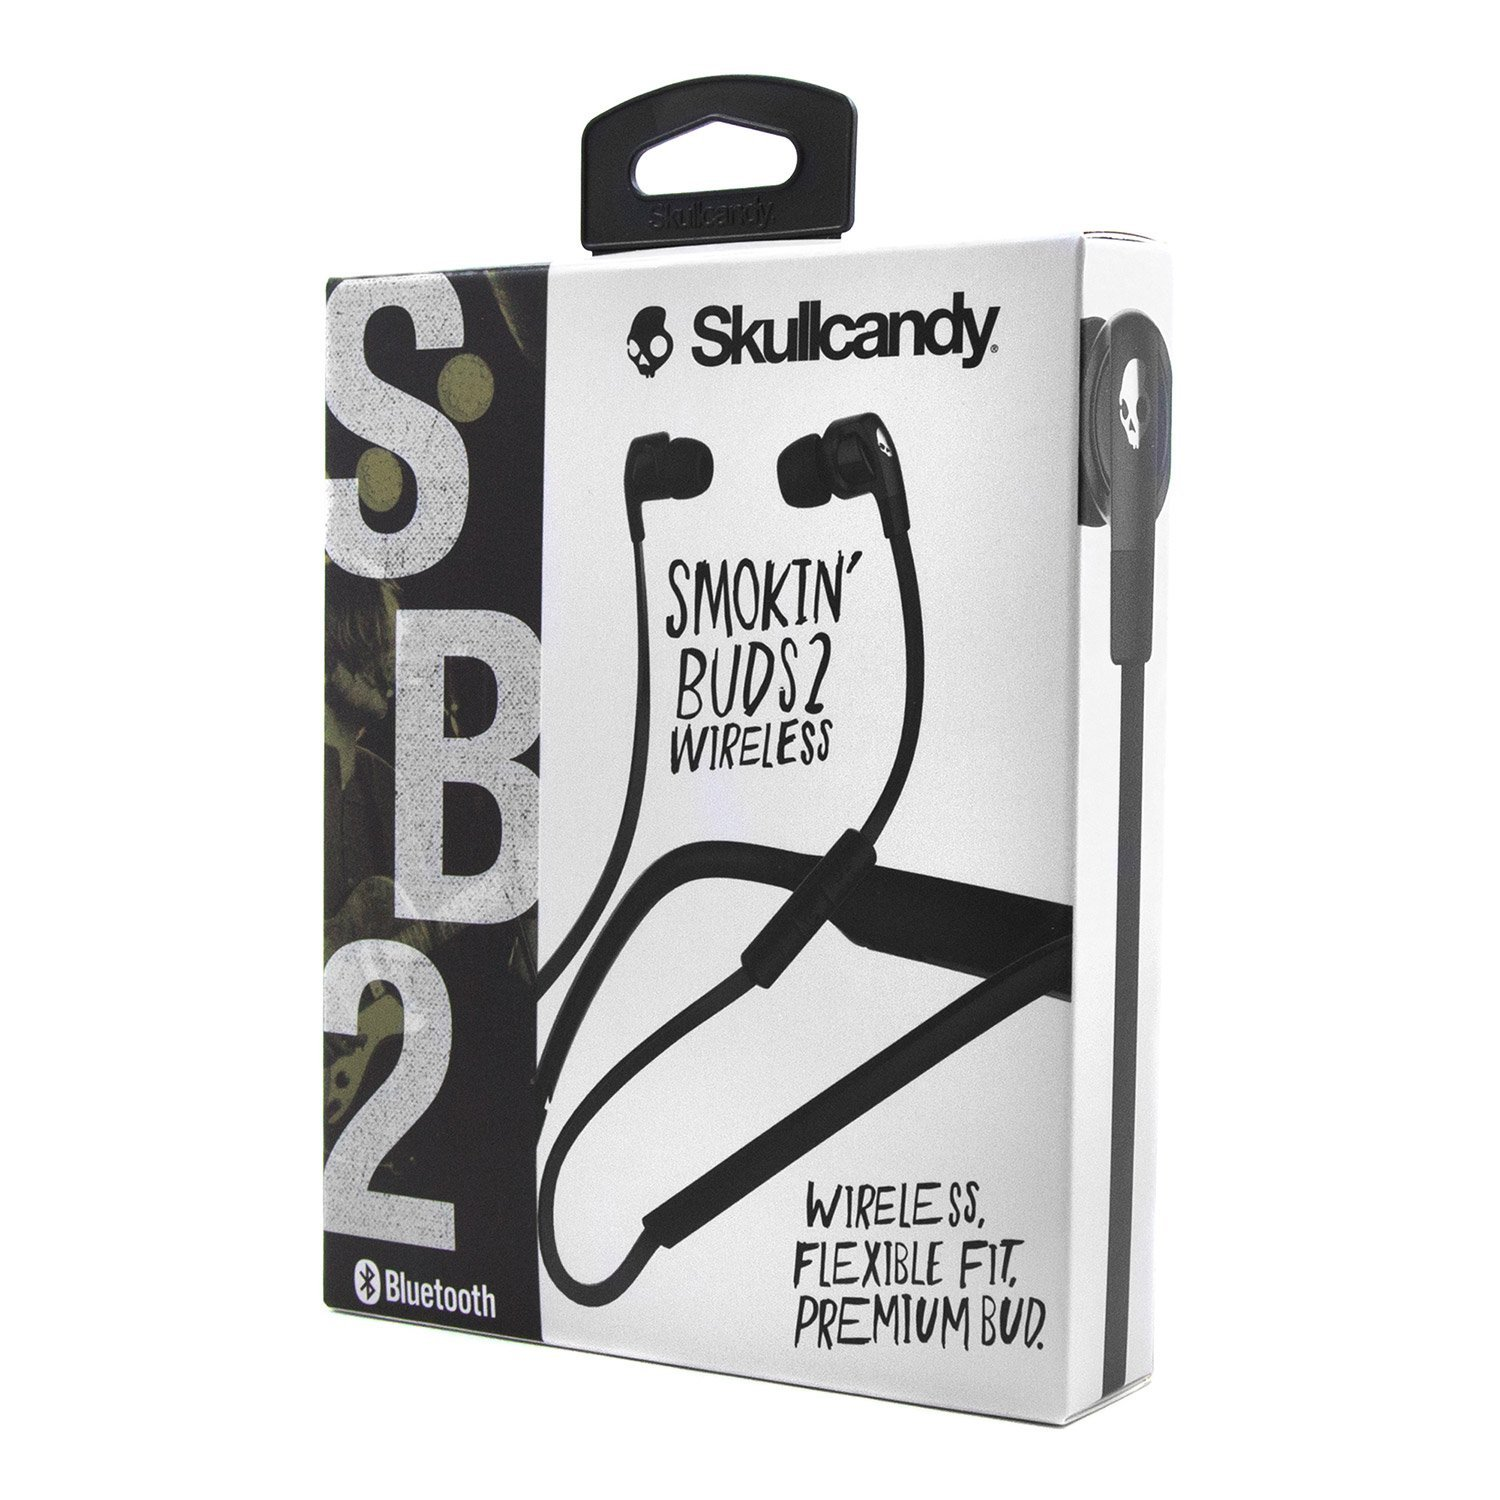 Skullcandy-Smokin-039-Buds-2-in-Ear-Bluetooth-Wireless-Earbuds-with-Microphone-New thumbnail 32